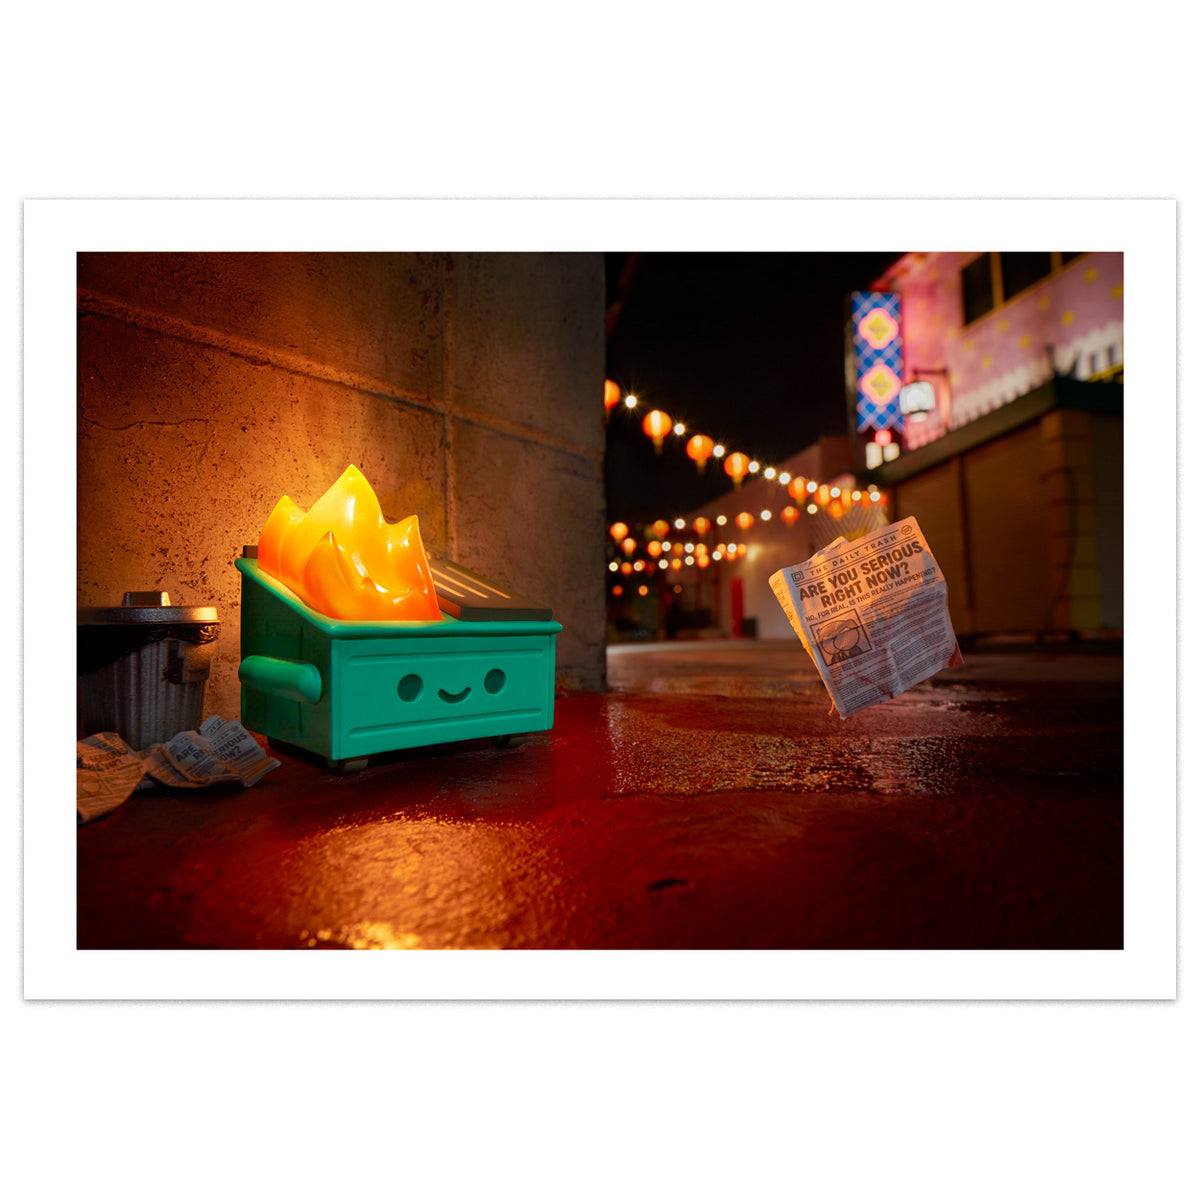 Dumpster Fire LE Photo Print by Brian McCarty